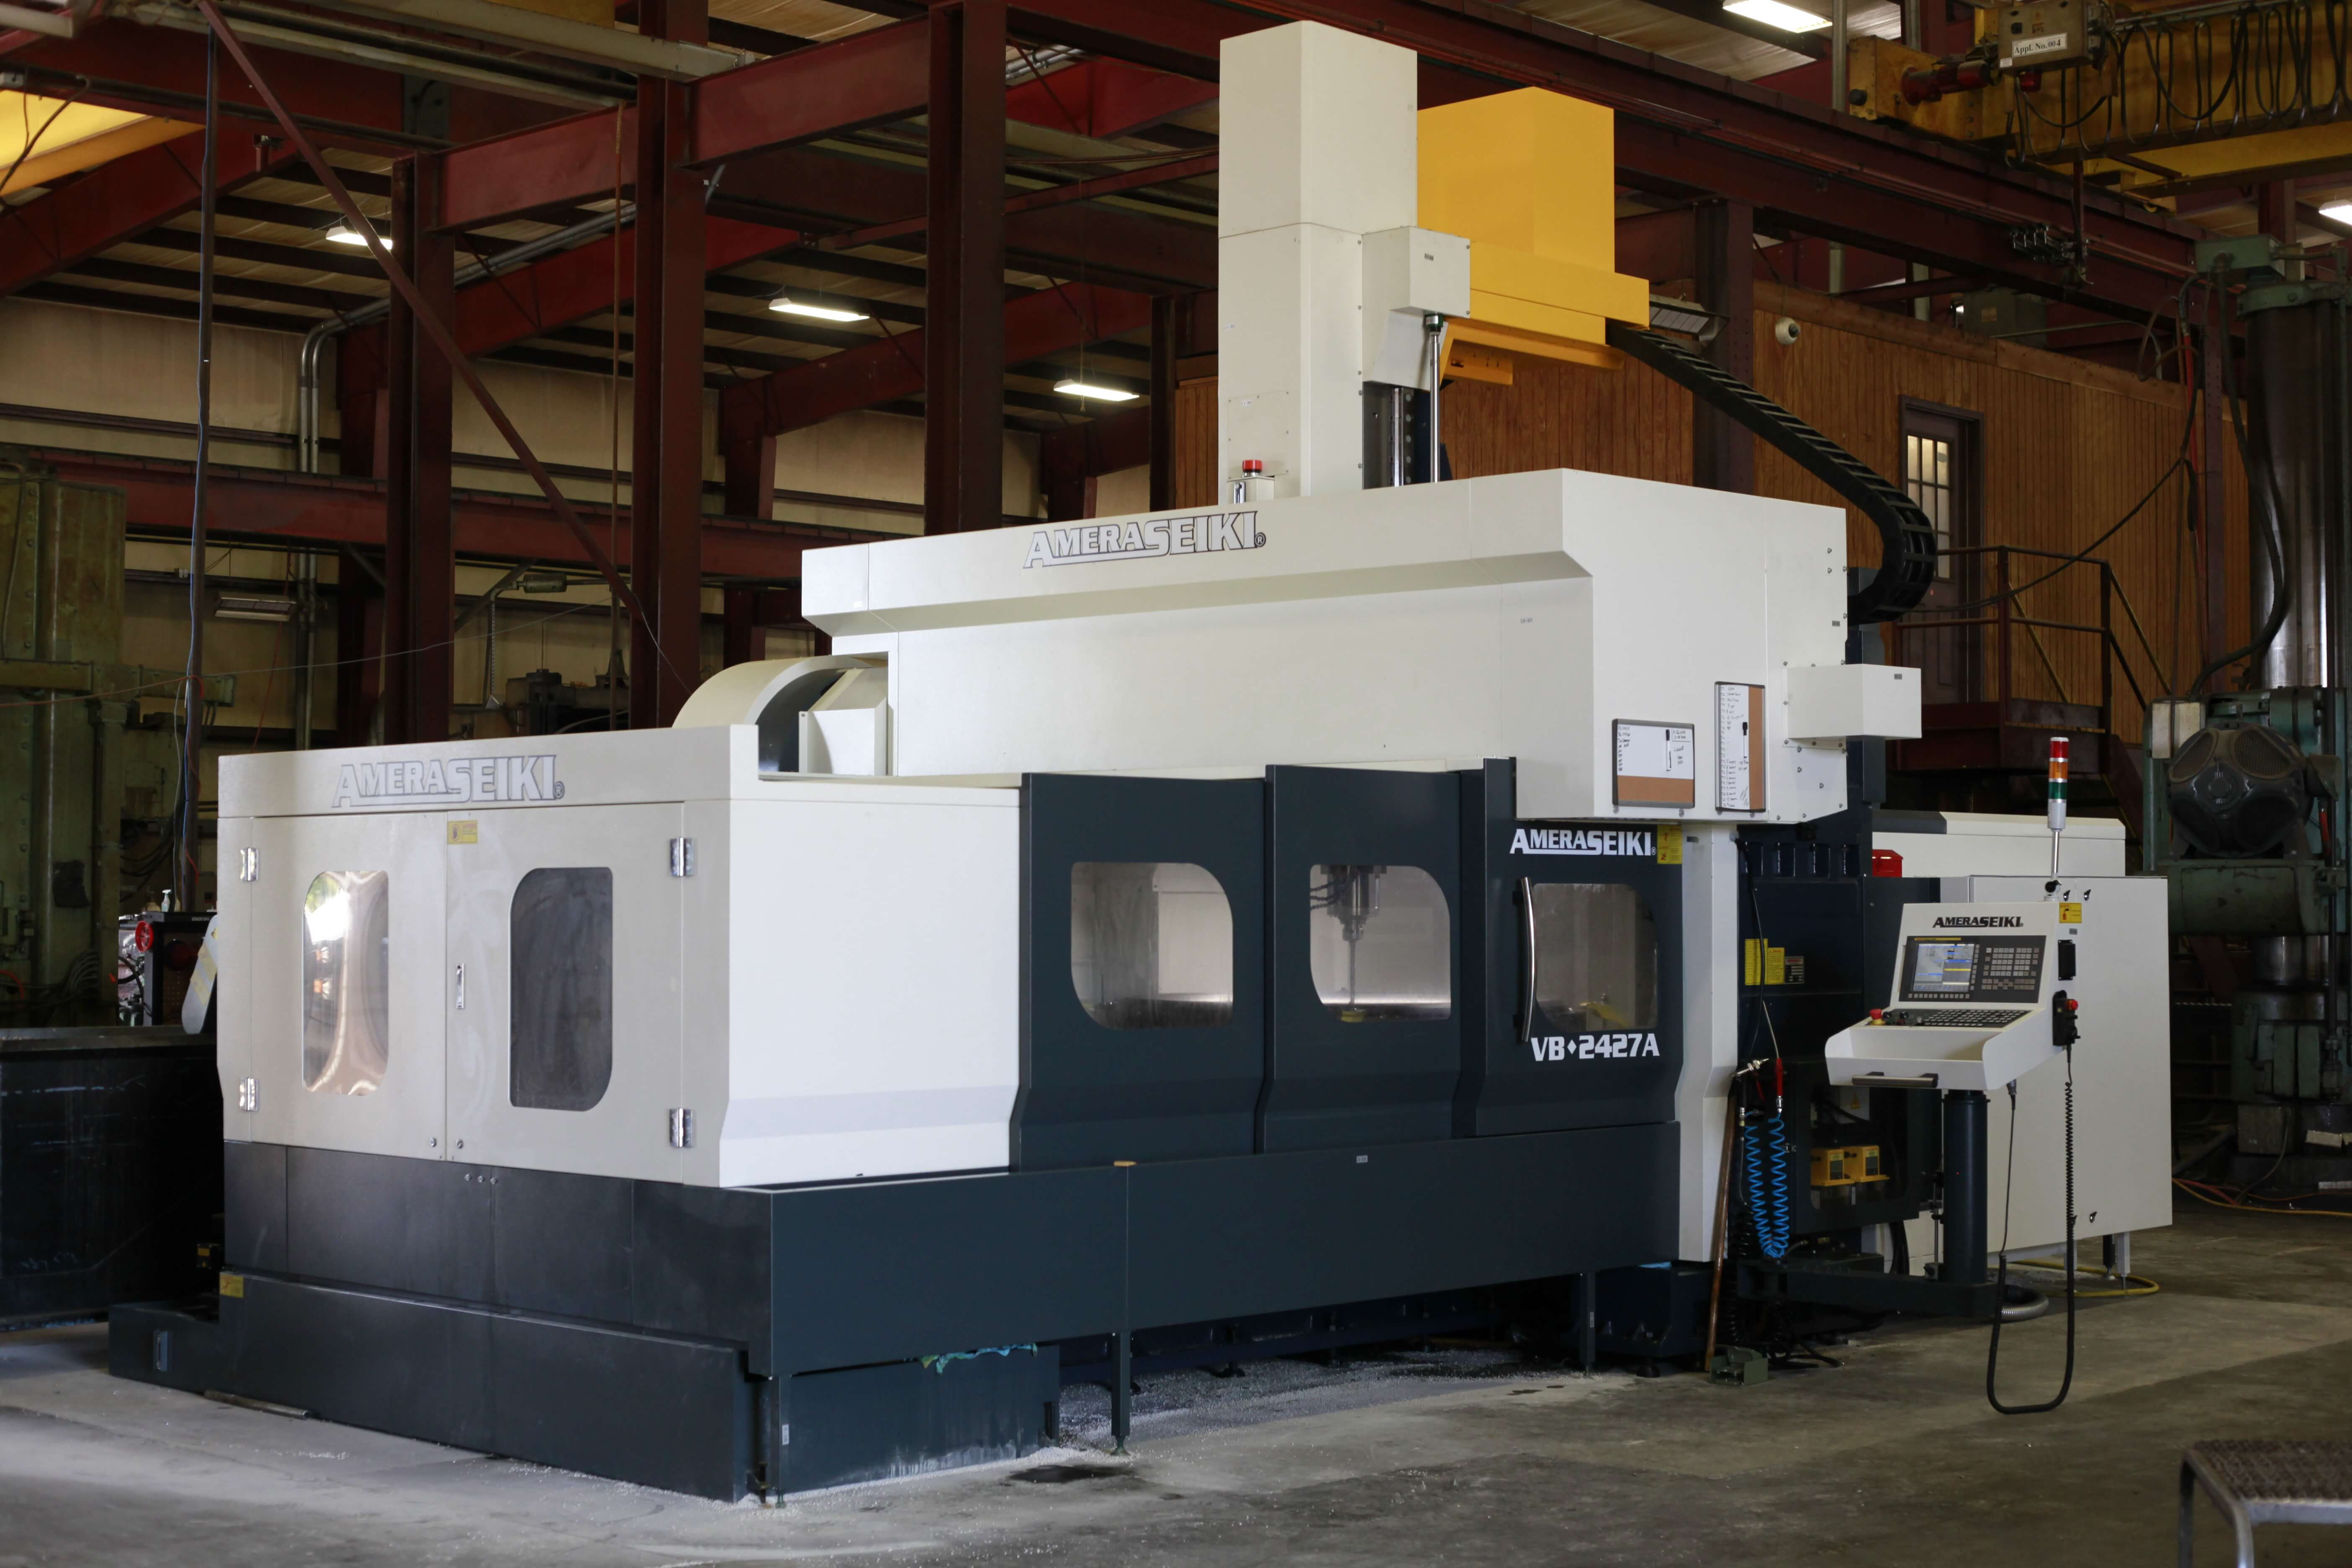 Amera Seiki VB-2427A Vertical Machining Center